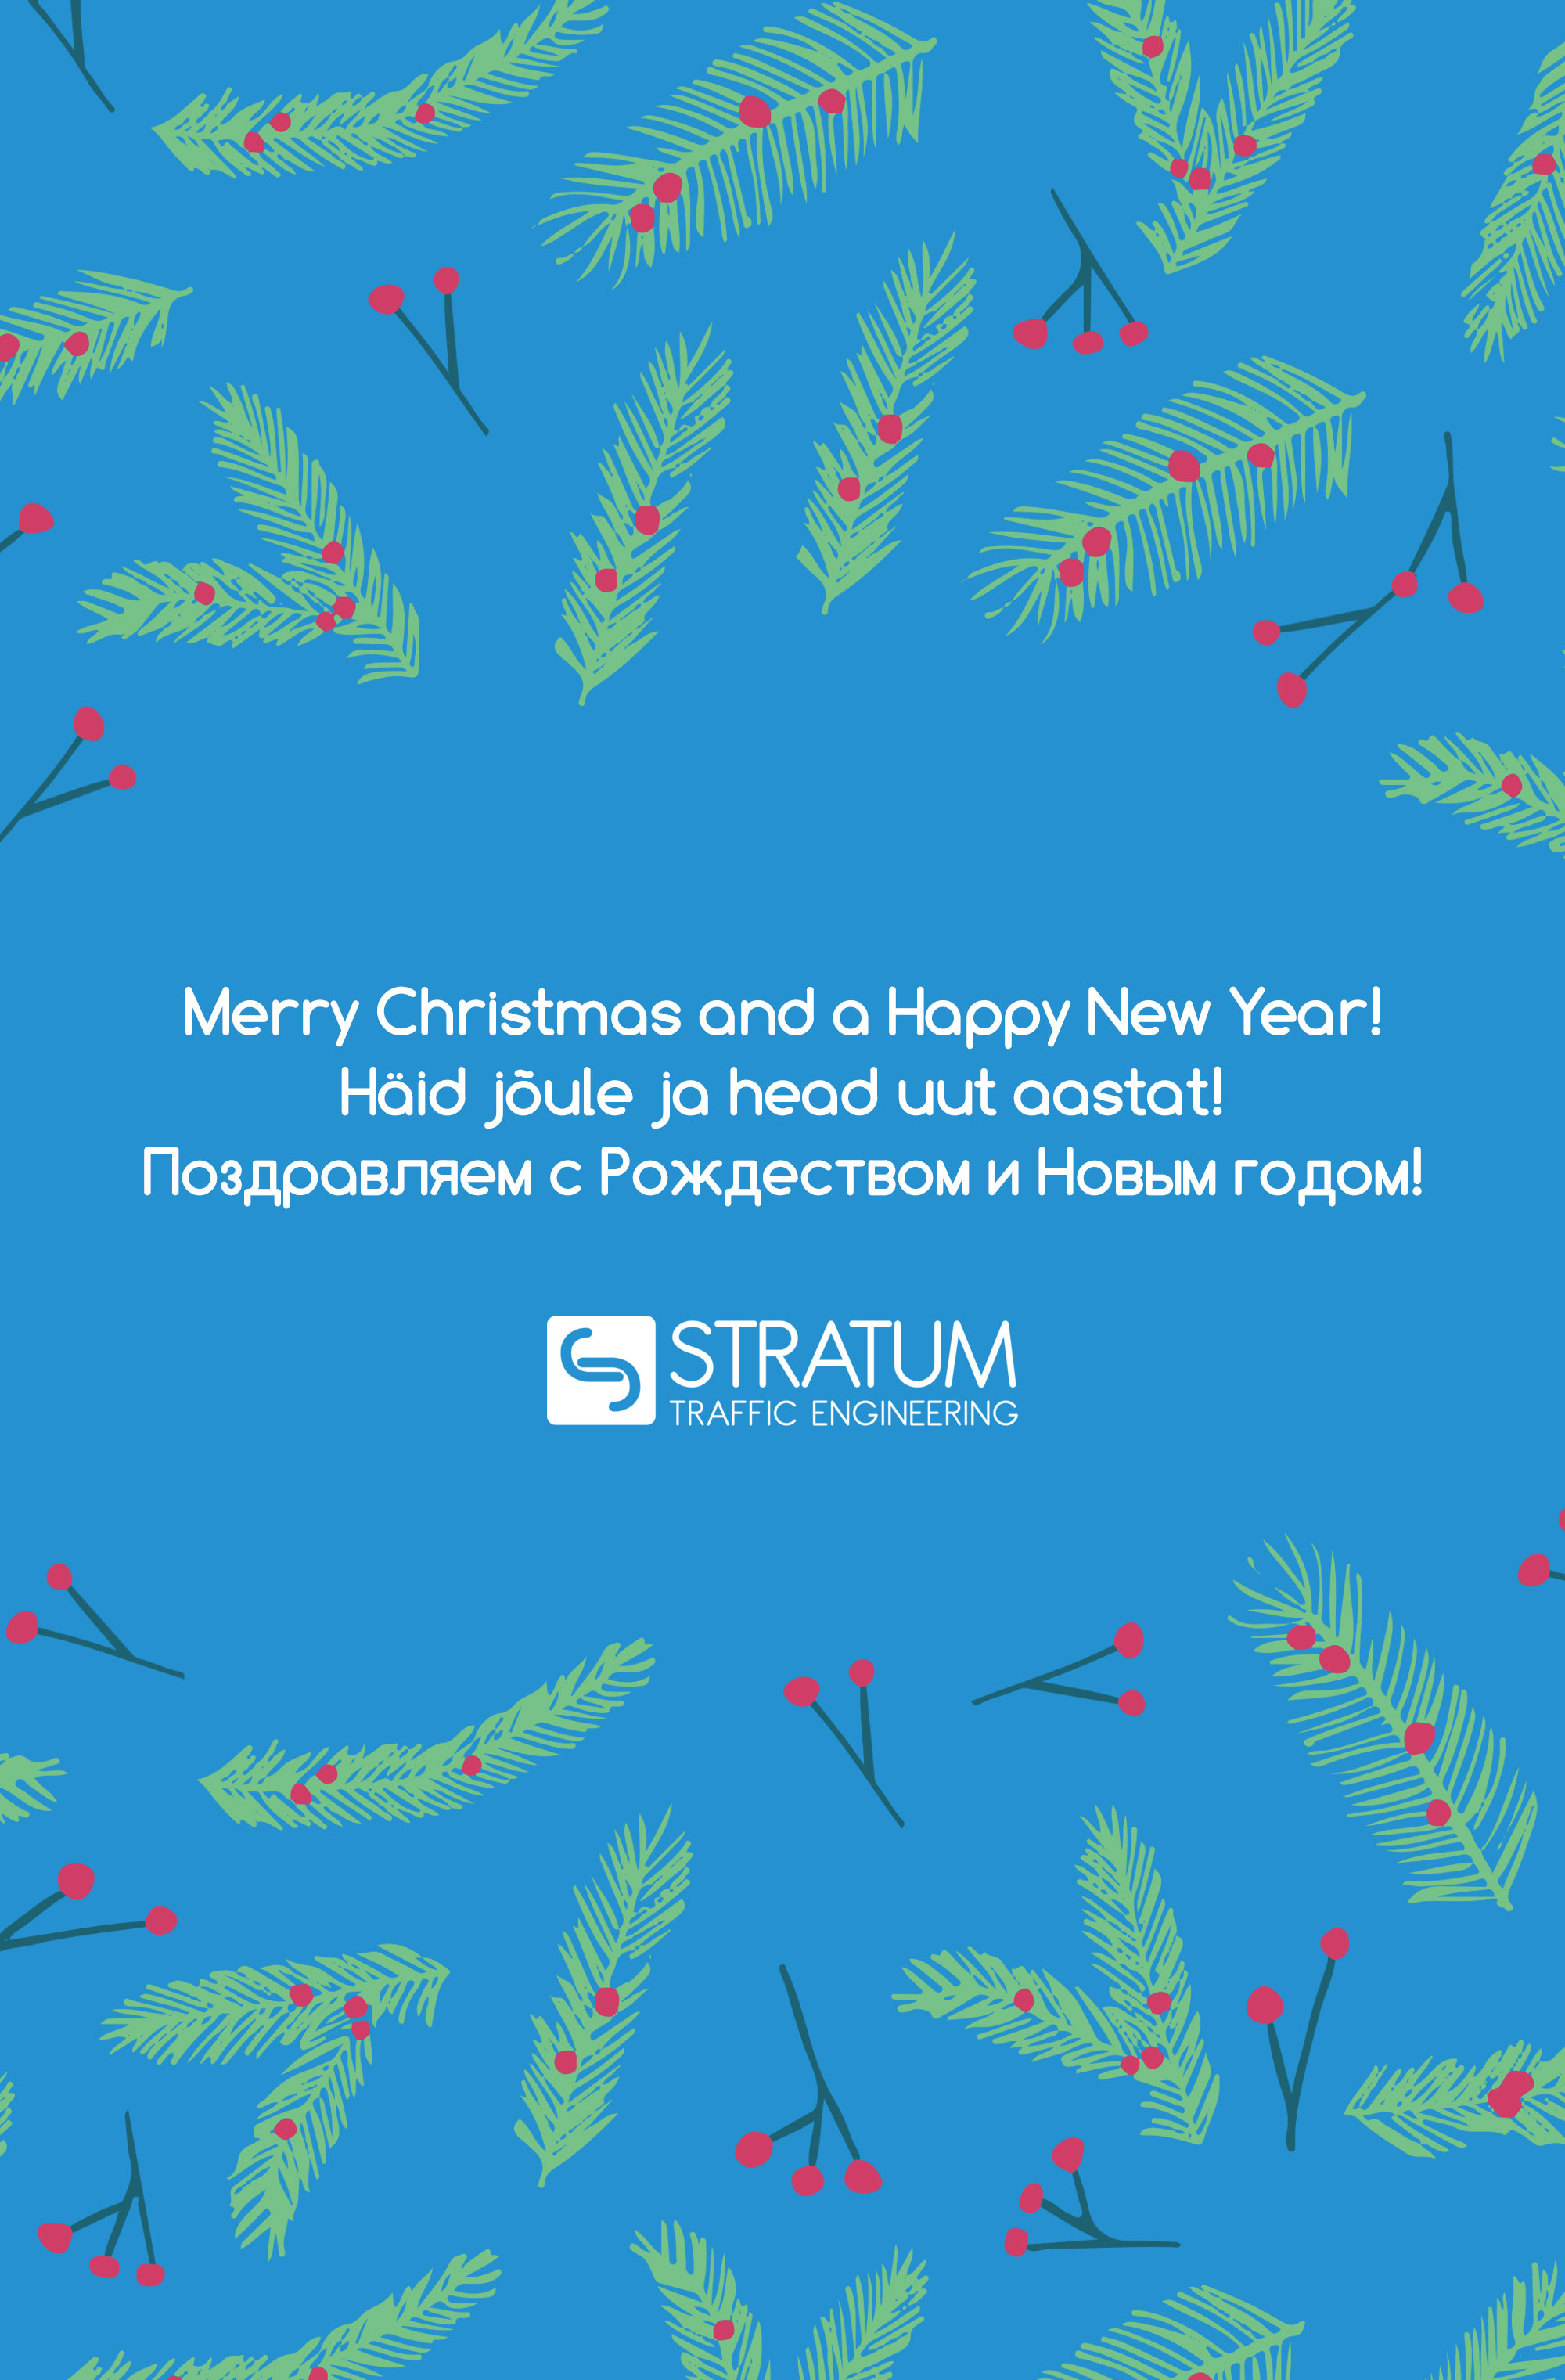 We Are Wishing You Merry Christmas And Happy New Year!